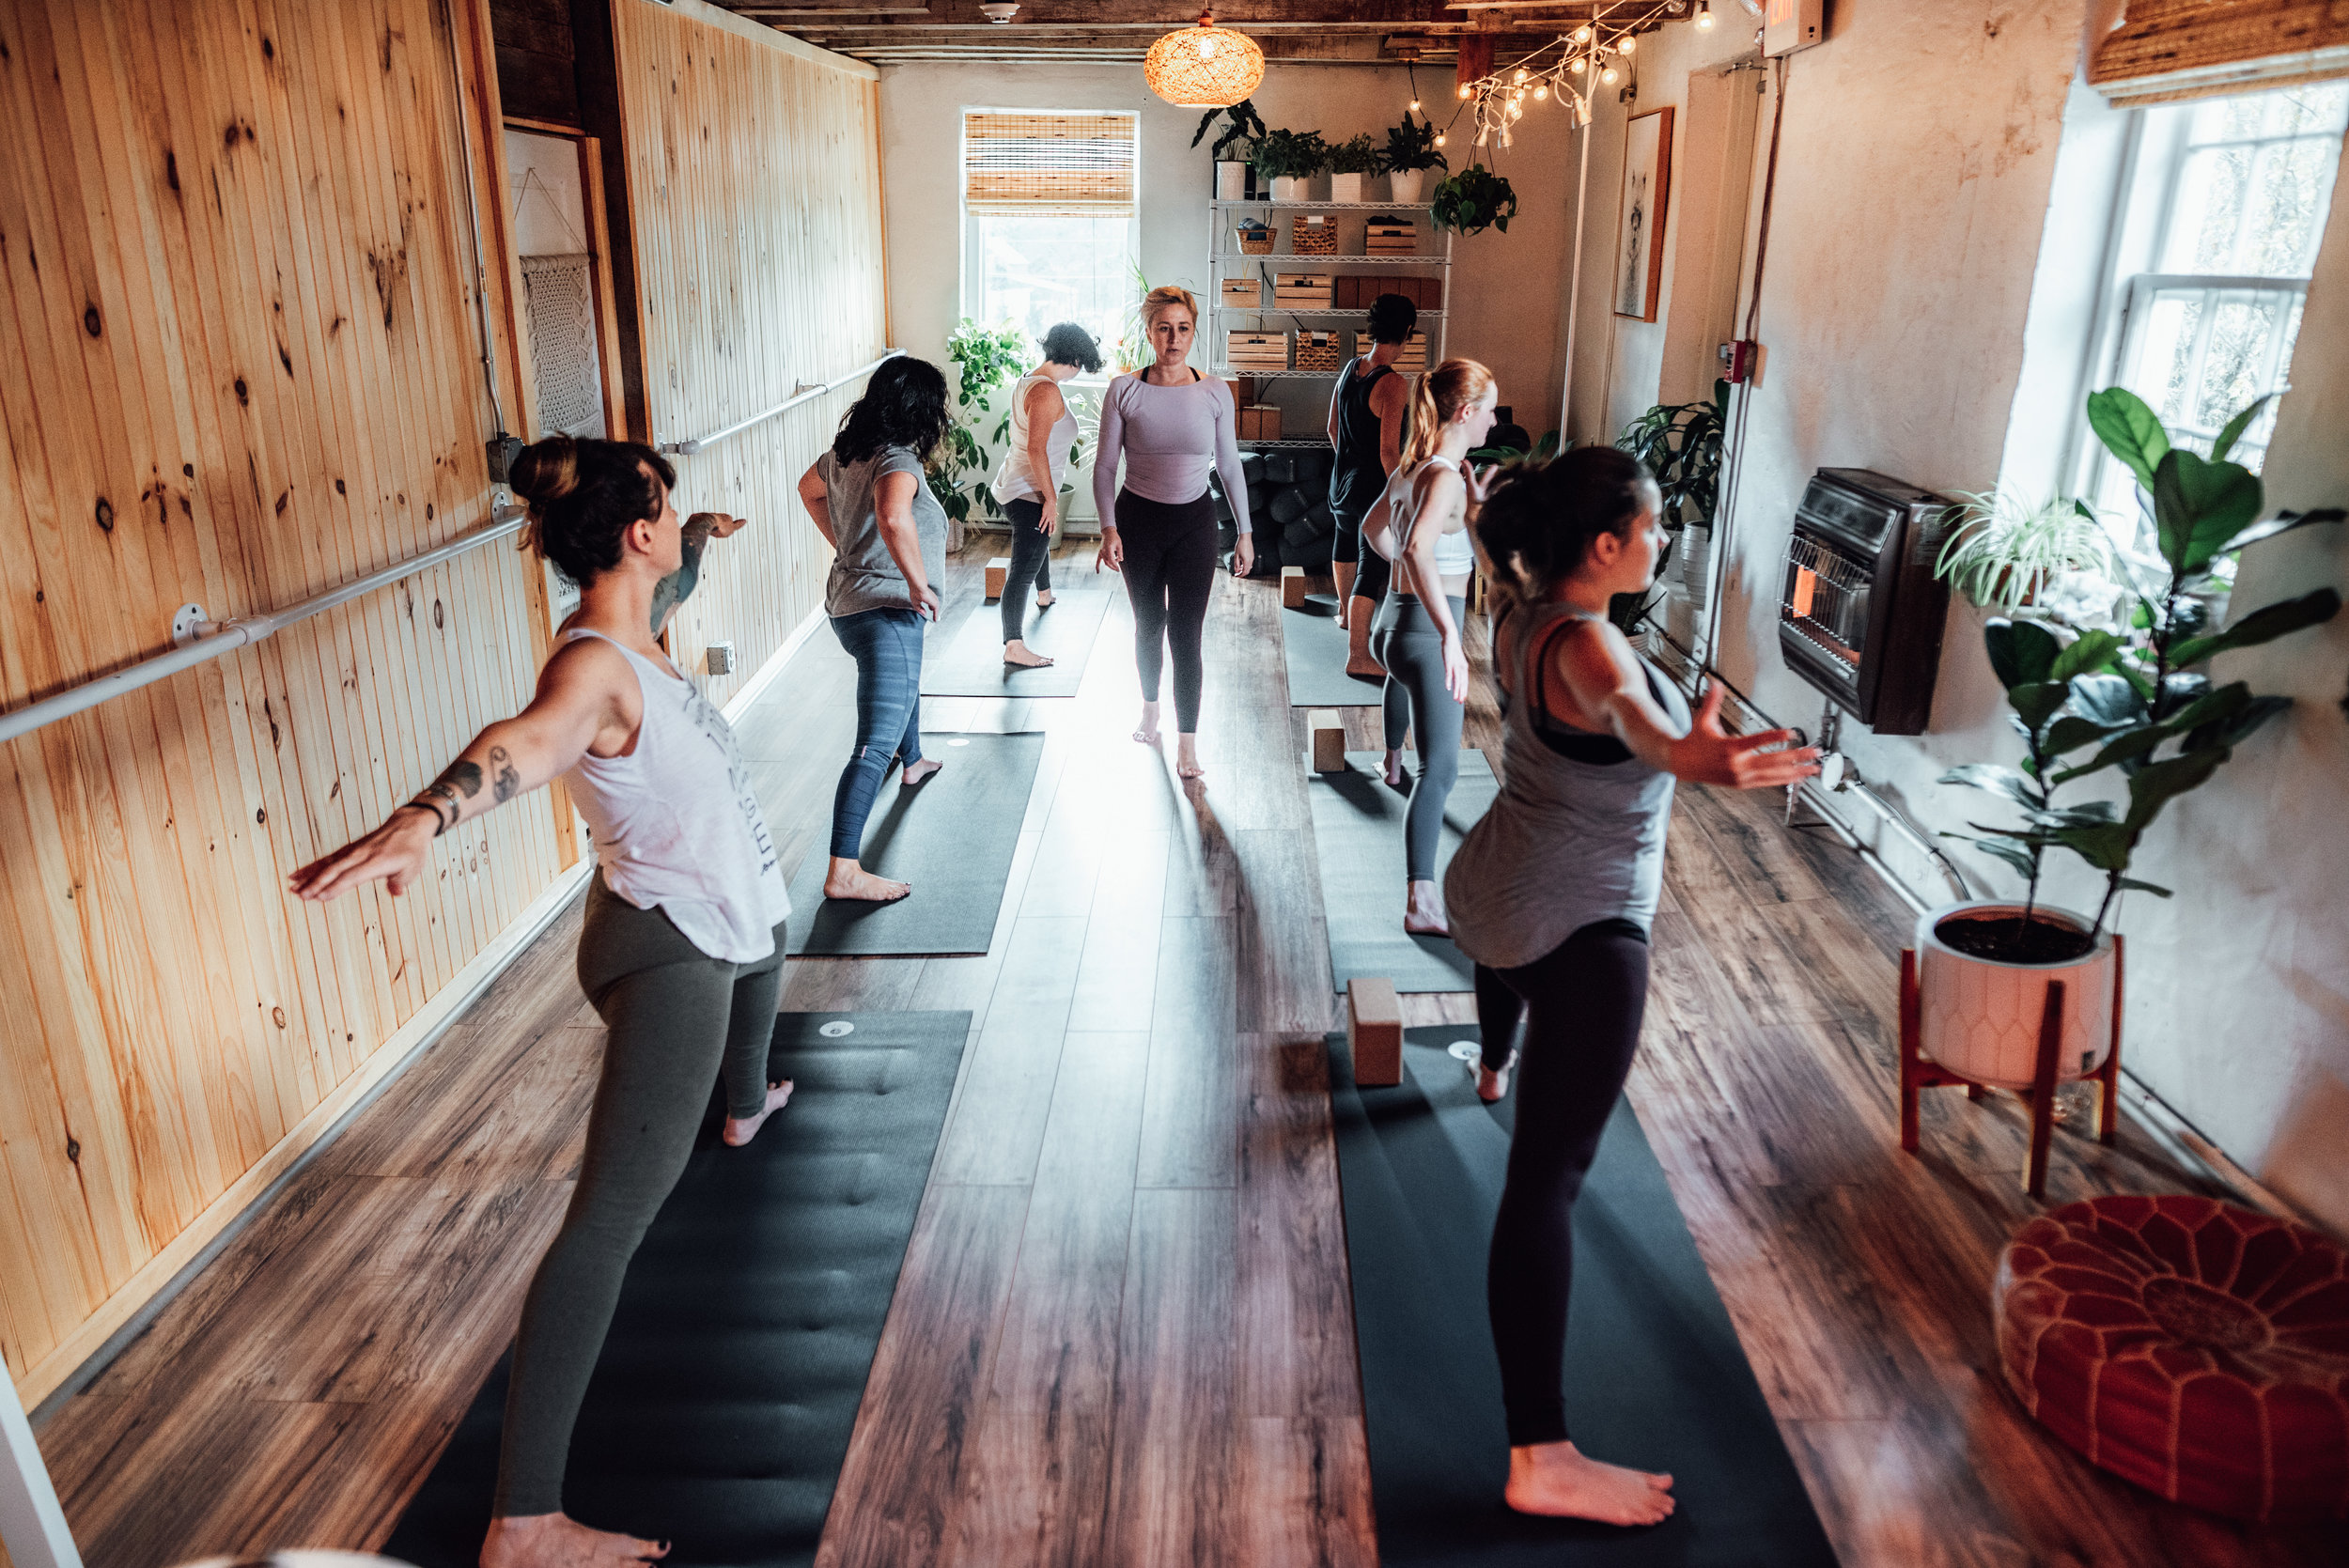 "Group Movement. - *New Student Special 30 days for $40Unlimited Classes!*Single Class Drop in $18*5 Class Pack $65 (5 class @ $13 each)exp. 6 month*10 Class Pack $120 (10 class @ $12 each)exp. 12 month*20 Class Pack $210 (20 class @ $10.50 each)*Unlimited Classes ""Auto Pay"" $79 a Month.*Unlimited Classes W/O Auto Pay $89 a Month.**Senior & Student 15% OFF inquire in studio****To set up Auto Pay Inquire in studio**"